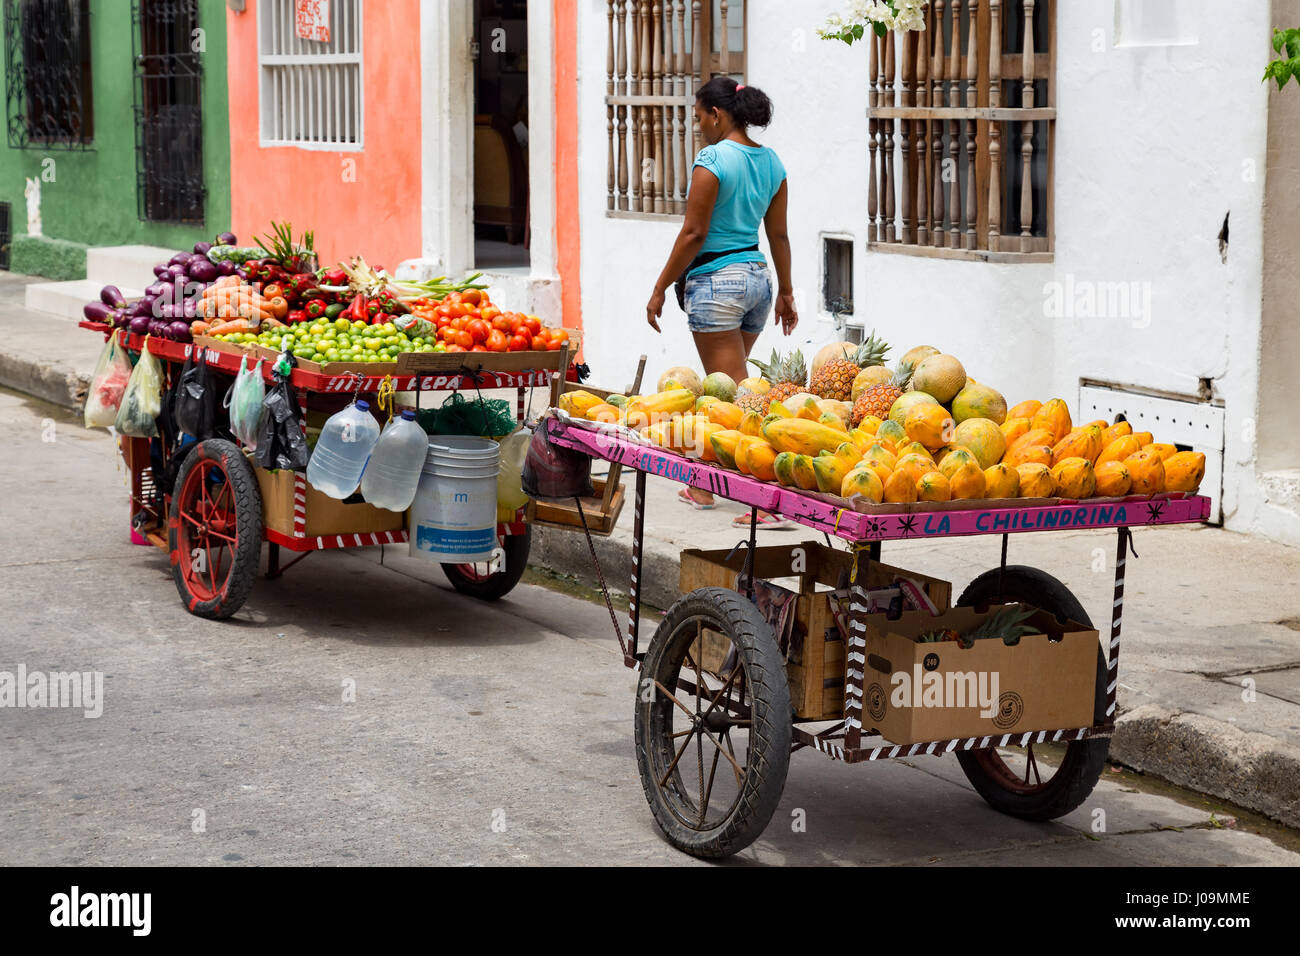 Man Selling Fruit Cartagena Stock Photos & Man Selling Fruit